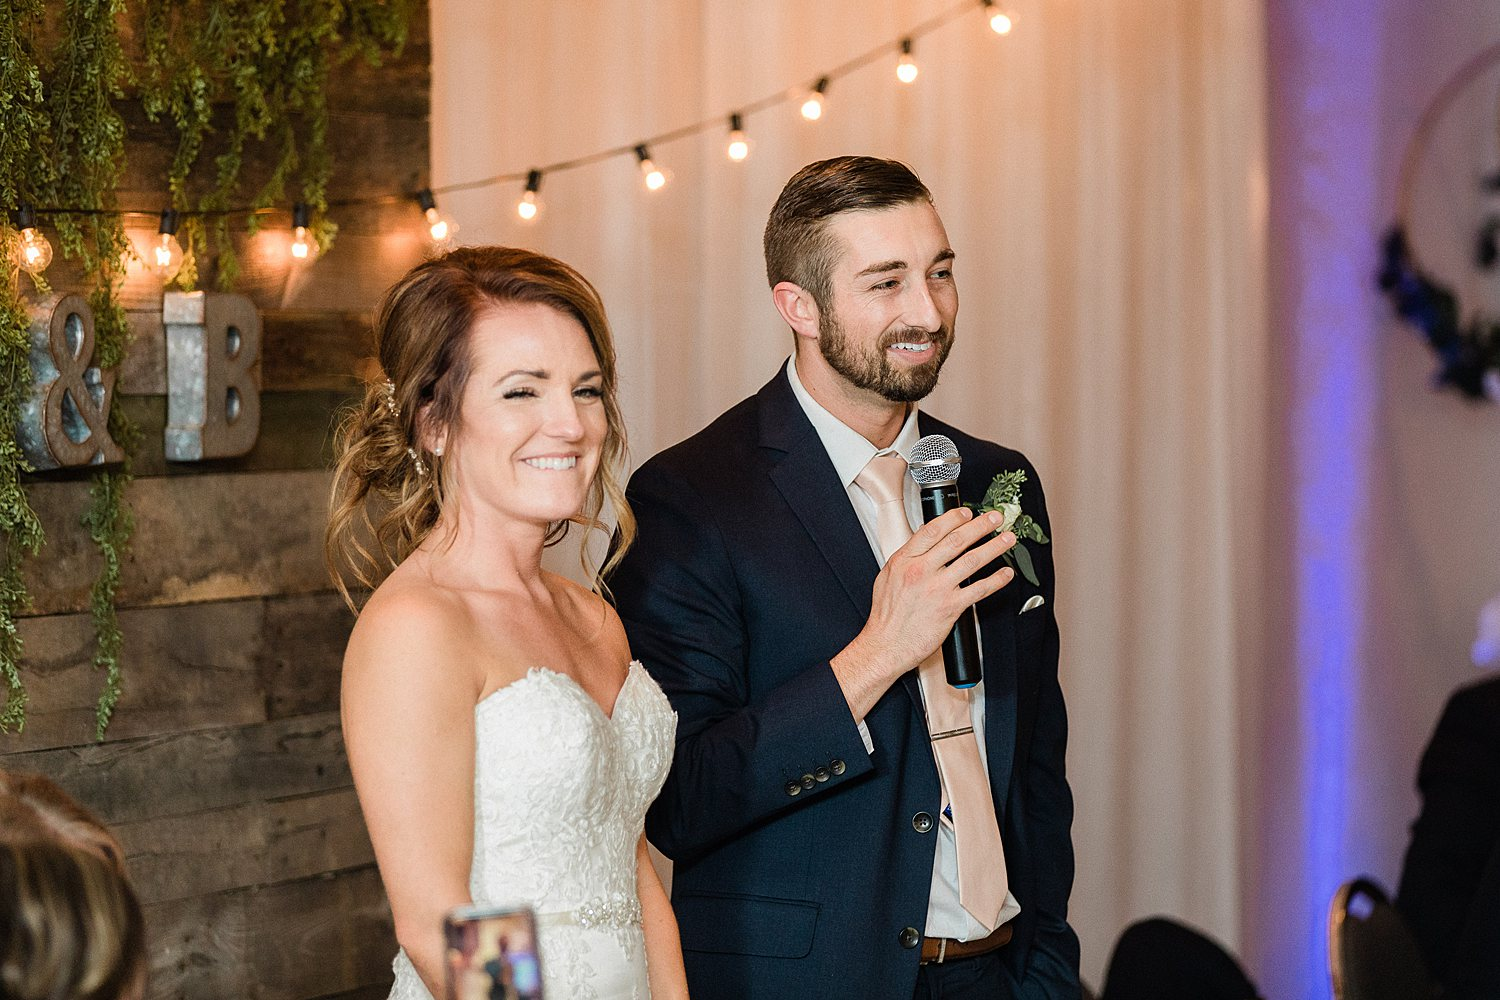 North_Central_Wisconsin_Event_Wedding_Venues_Fall_Weddings_The_Bailiwick_Venue_James-Stokes-Photography101.jpg